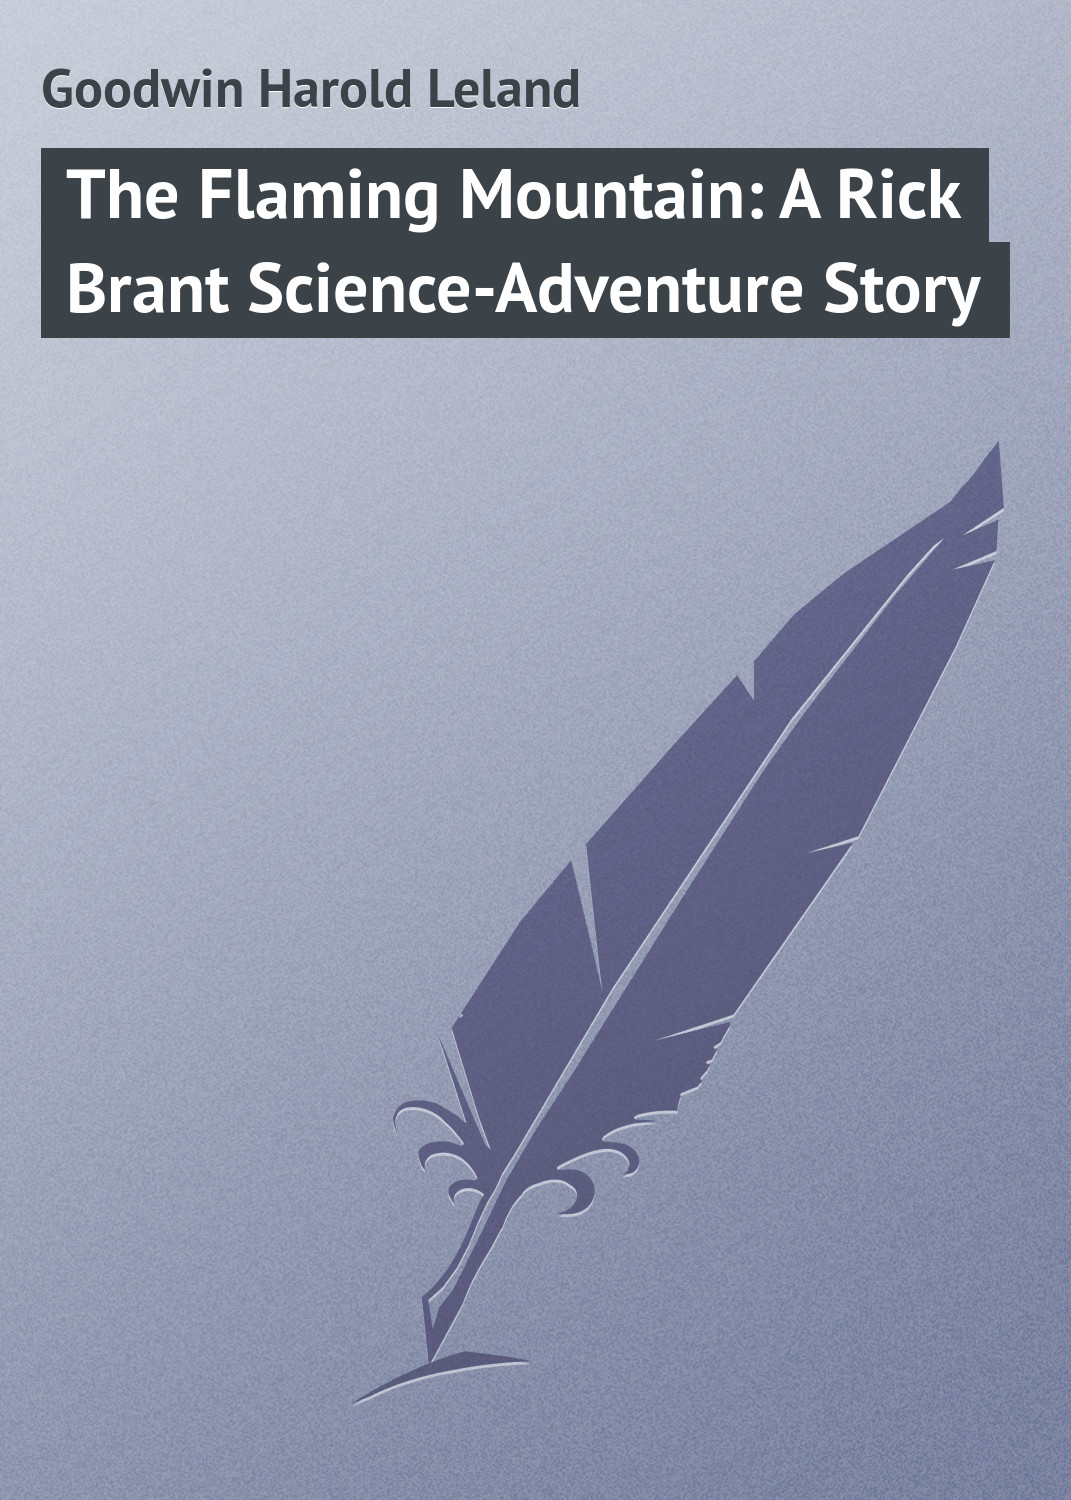 Goodwin Harold Leland The Flaming Mountain: A Rick Brant Science-Adventure Story goodwin harold leland the flying stingaree a rick brant science adventure story